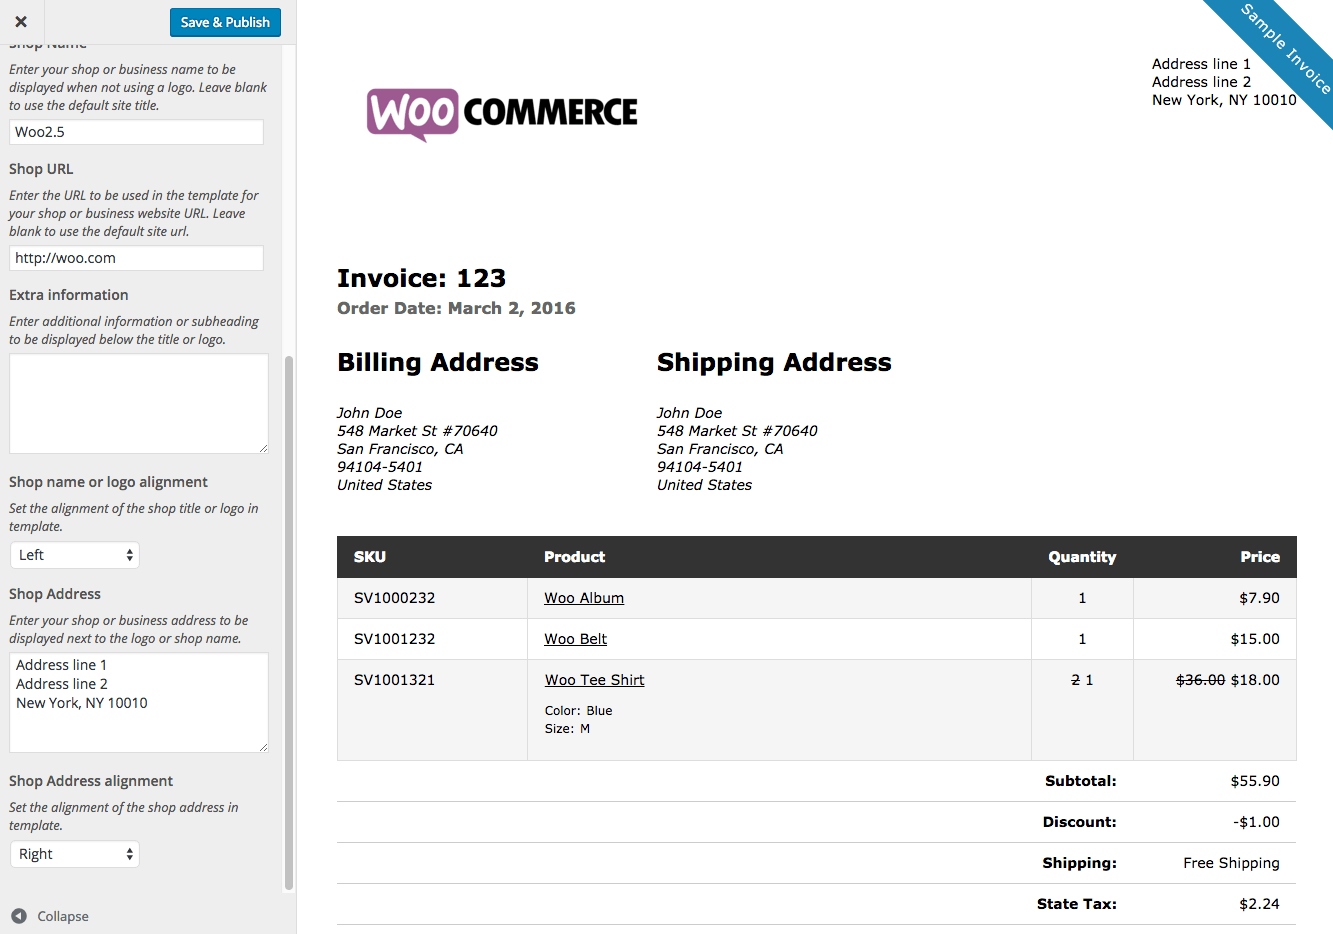 Carsforlessus  Pleasing Print Invoices Amp Packing Lists  Woocommerce With Magnificent Woocommerce Print Invoices  Packing Lists Customizer With Nice Hra Receipt Also Receipt Template Excel Free In Addition Payment Confirmation Receipt And Amount Received Receipt Format As Well As Receipt Creator Free Additionally House Rent Receipt India From Woocommercecom With Carsforlessus  Magnificent Print Invoices Amp Packing Lists  Woocommerce With Nice Woocommerce Print Invoices  Packing Lists Customizer And Pleasing Hra Receipt Also Receipt Template Excel Free In Addition Payment Confirmation Receipt From Woocommercecom